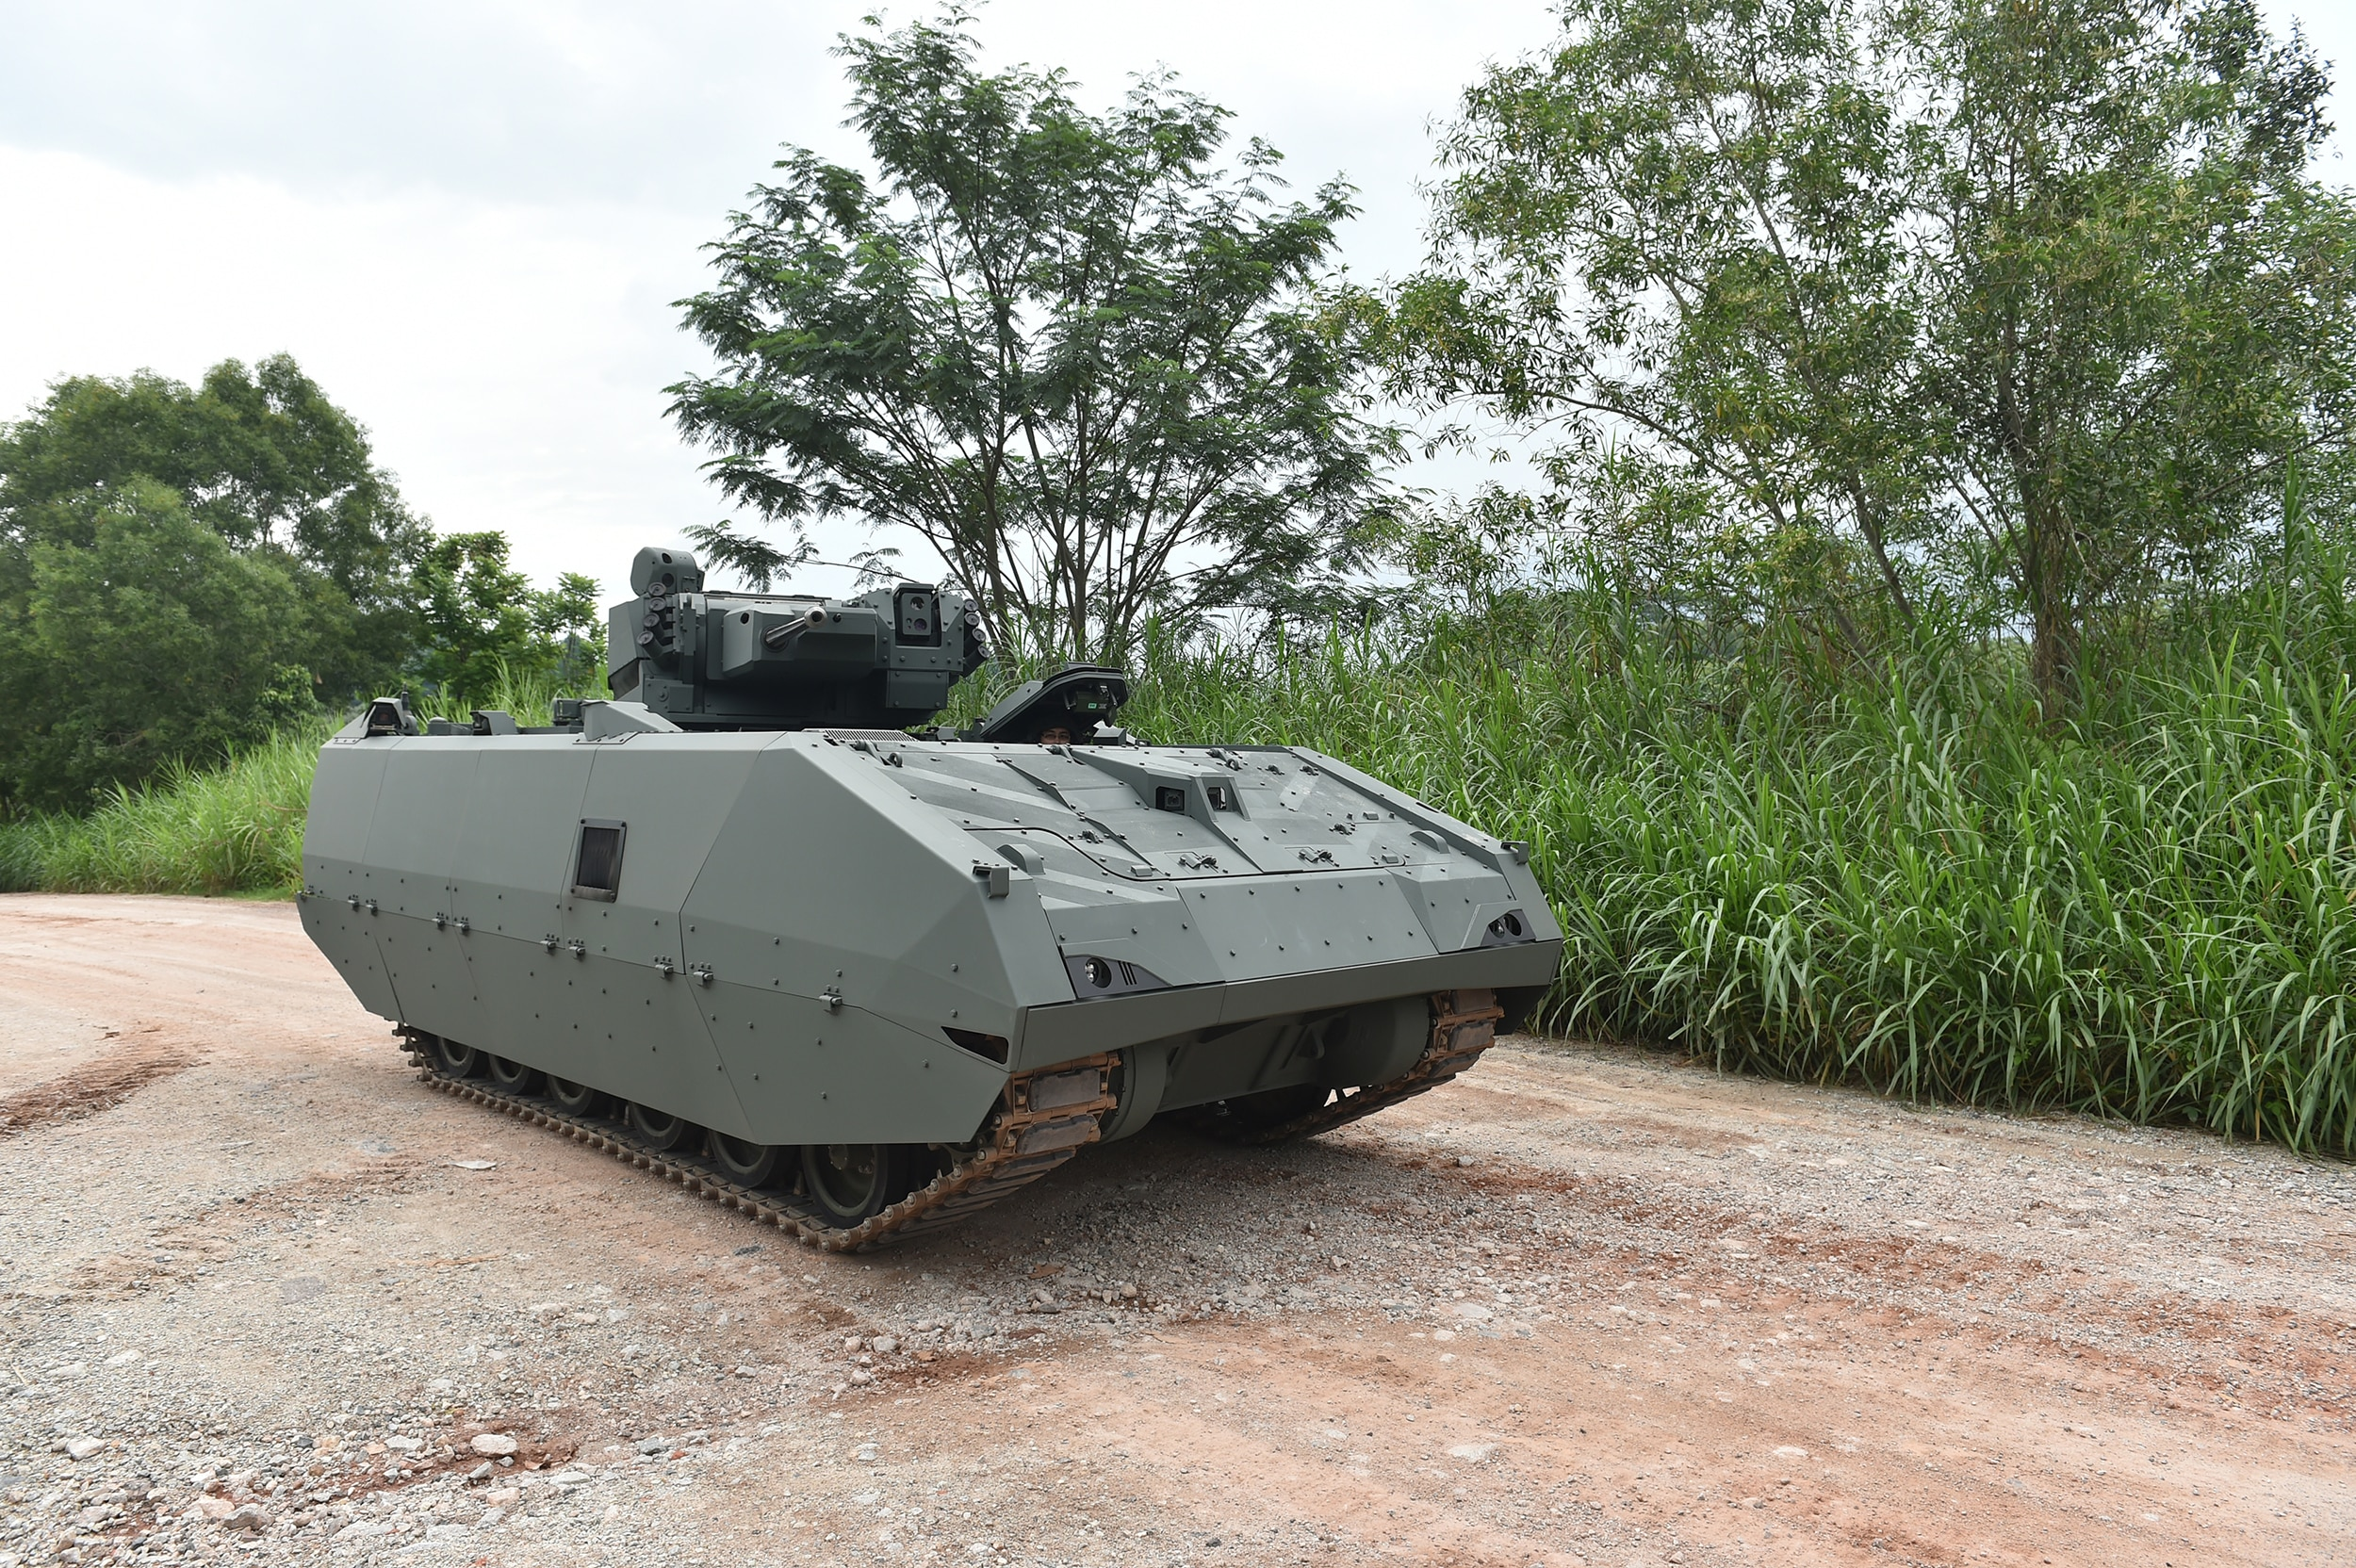 Developed jointly by Singapore's Defence Science and Technology Agency, Singapore Technologies Kinetics and ST Engineering's land systems division, the Next Generation AFV is expected to provide Singapore's armored forces with enhanced firepower, protection, mobility and situational awareness. (Photo courtesy of ST Kinetics)